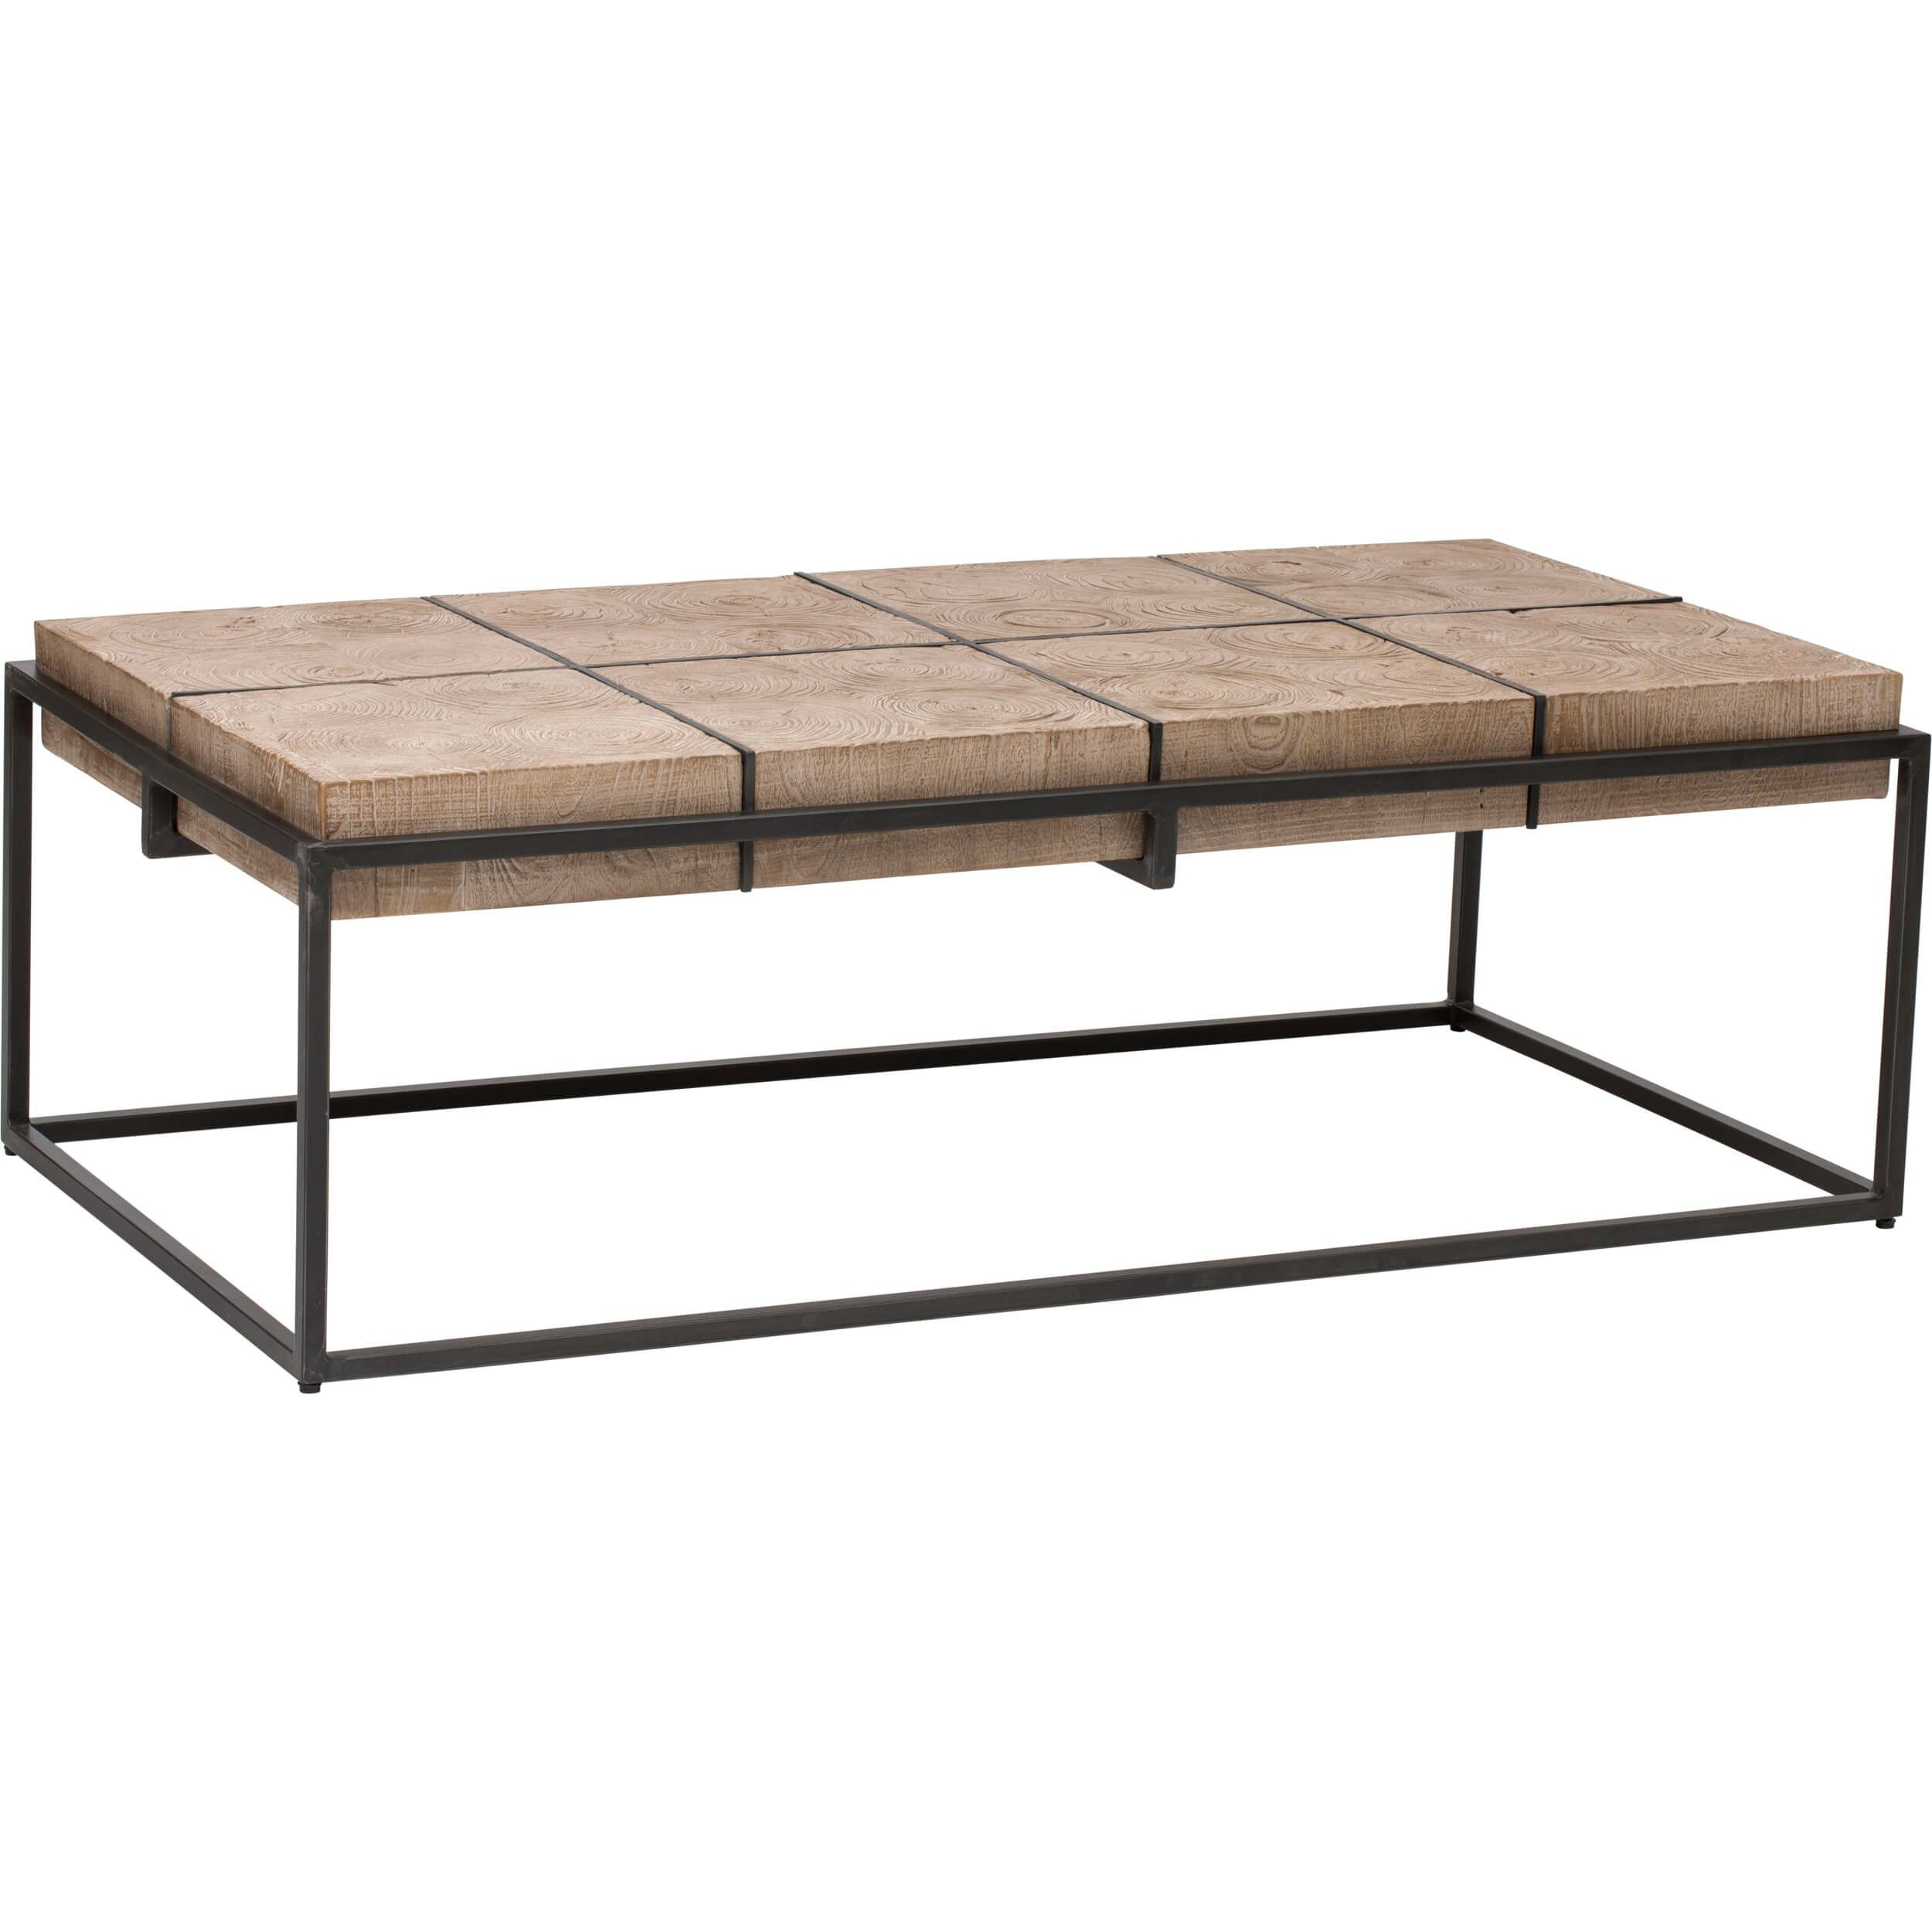 Cooper Rectangle Coffee Table - Coffee Tables - Accent Tables - Furniture